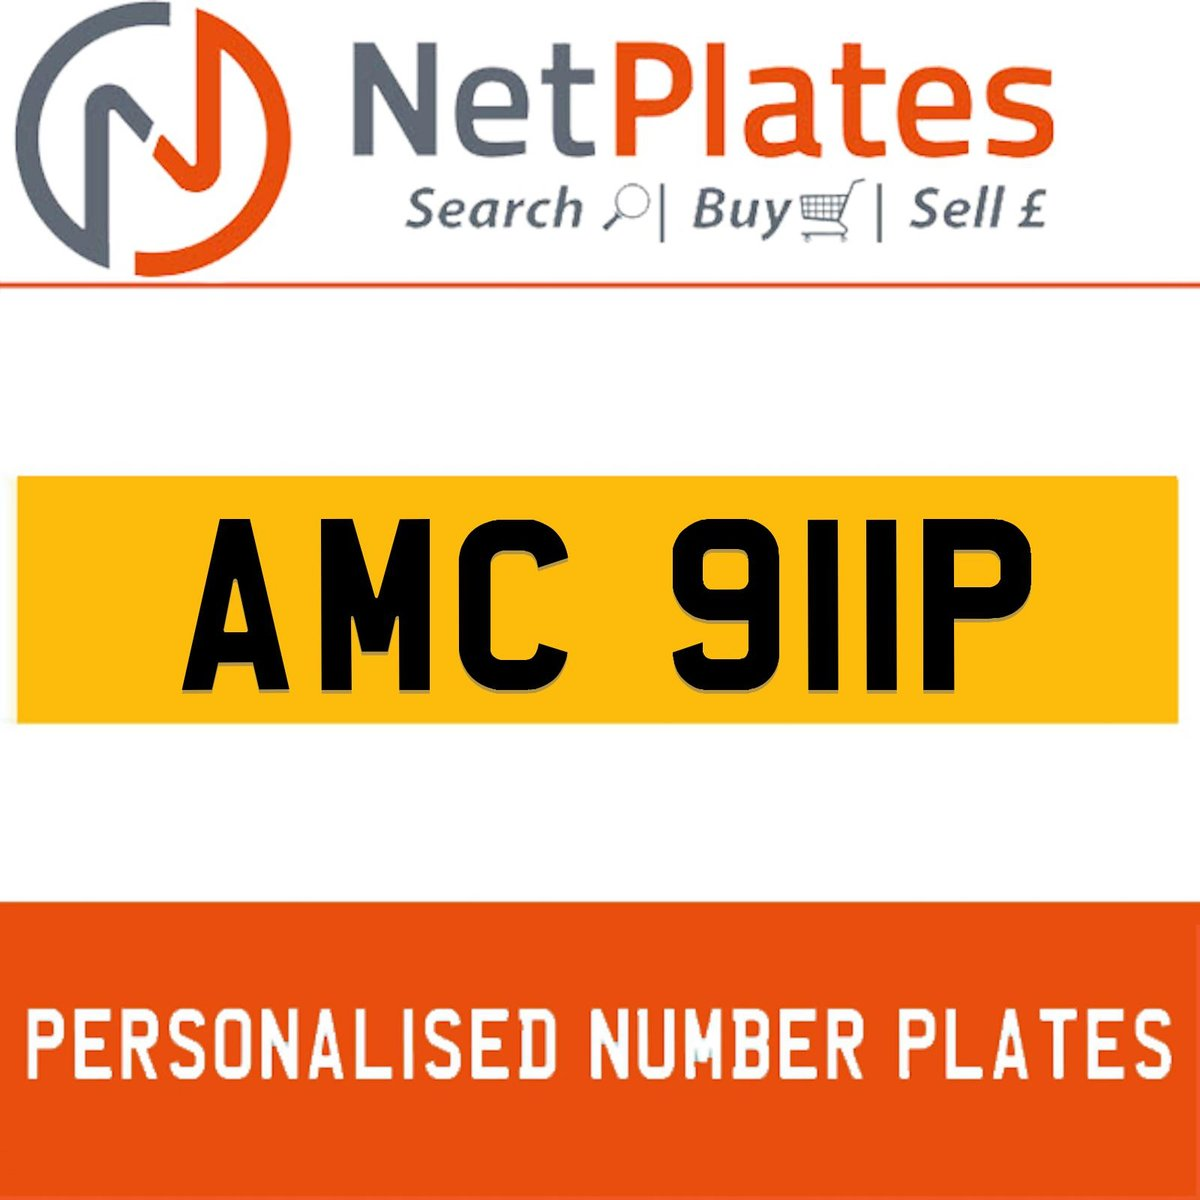 1900 AMC 911P PERSONALISED PRIVATE CHERISHED DVLA NUMBER PLATE For Sale (picture 1 of 5)